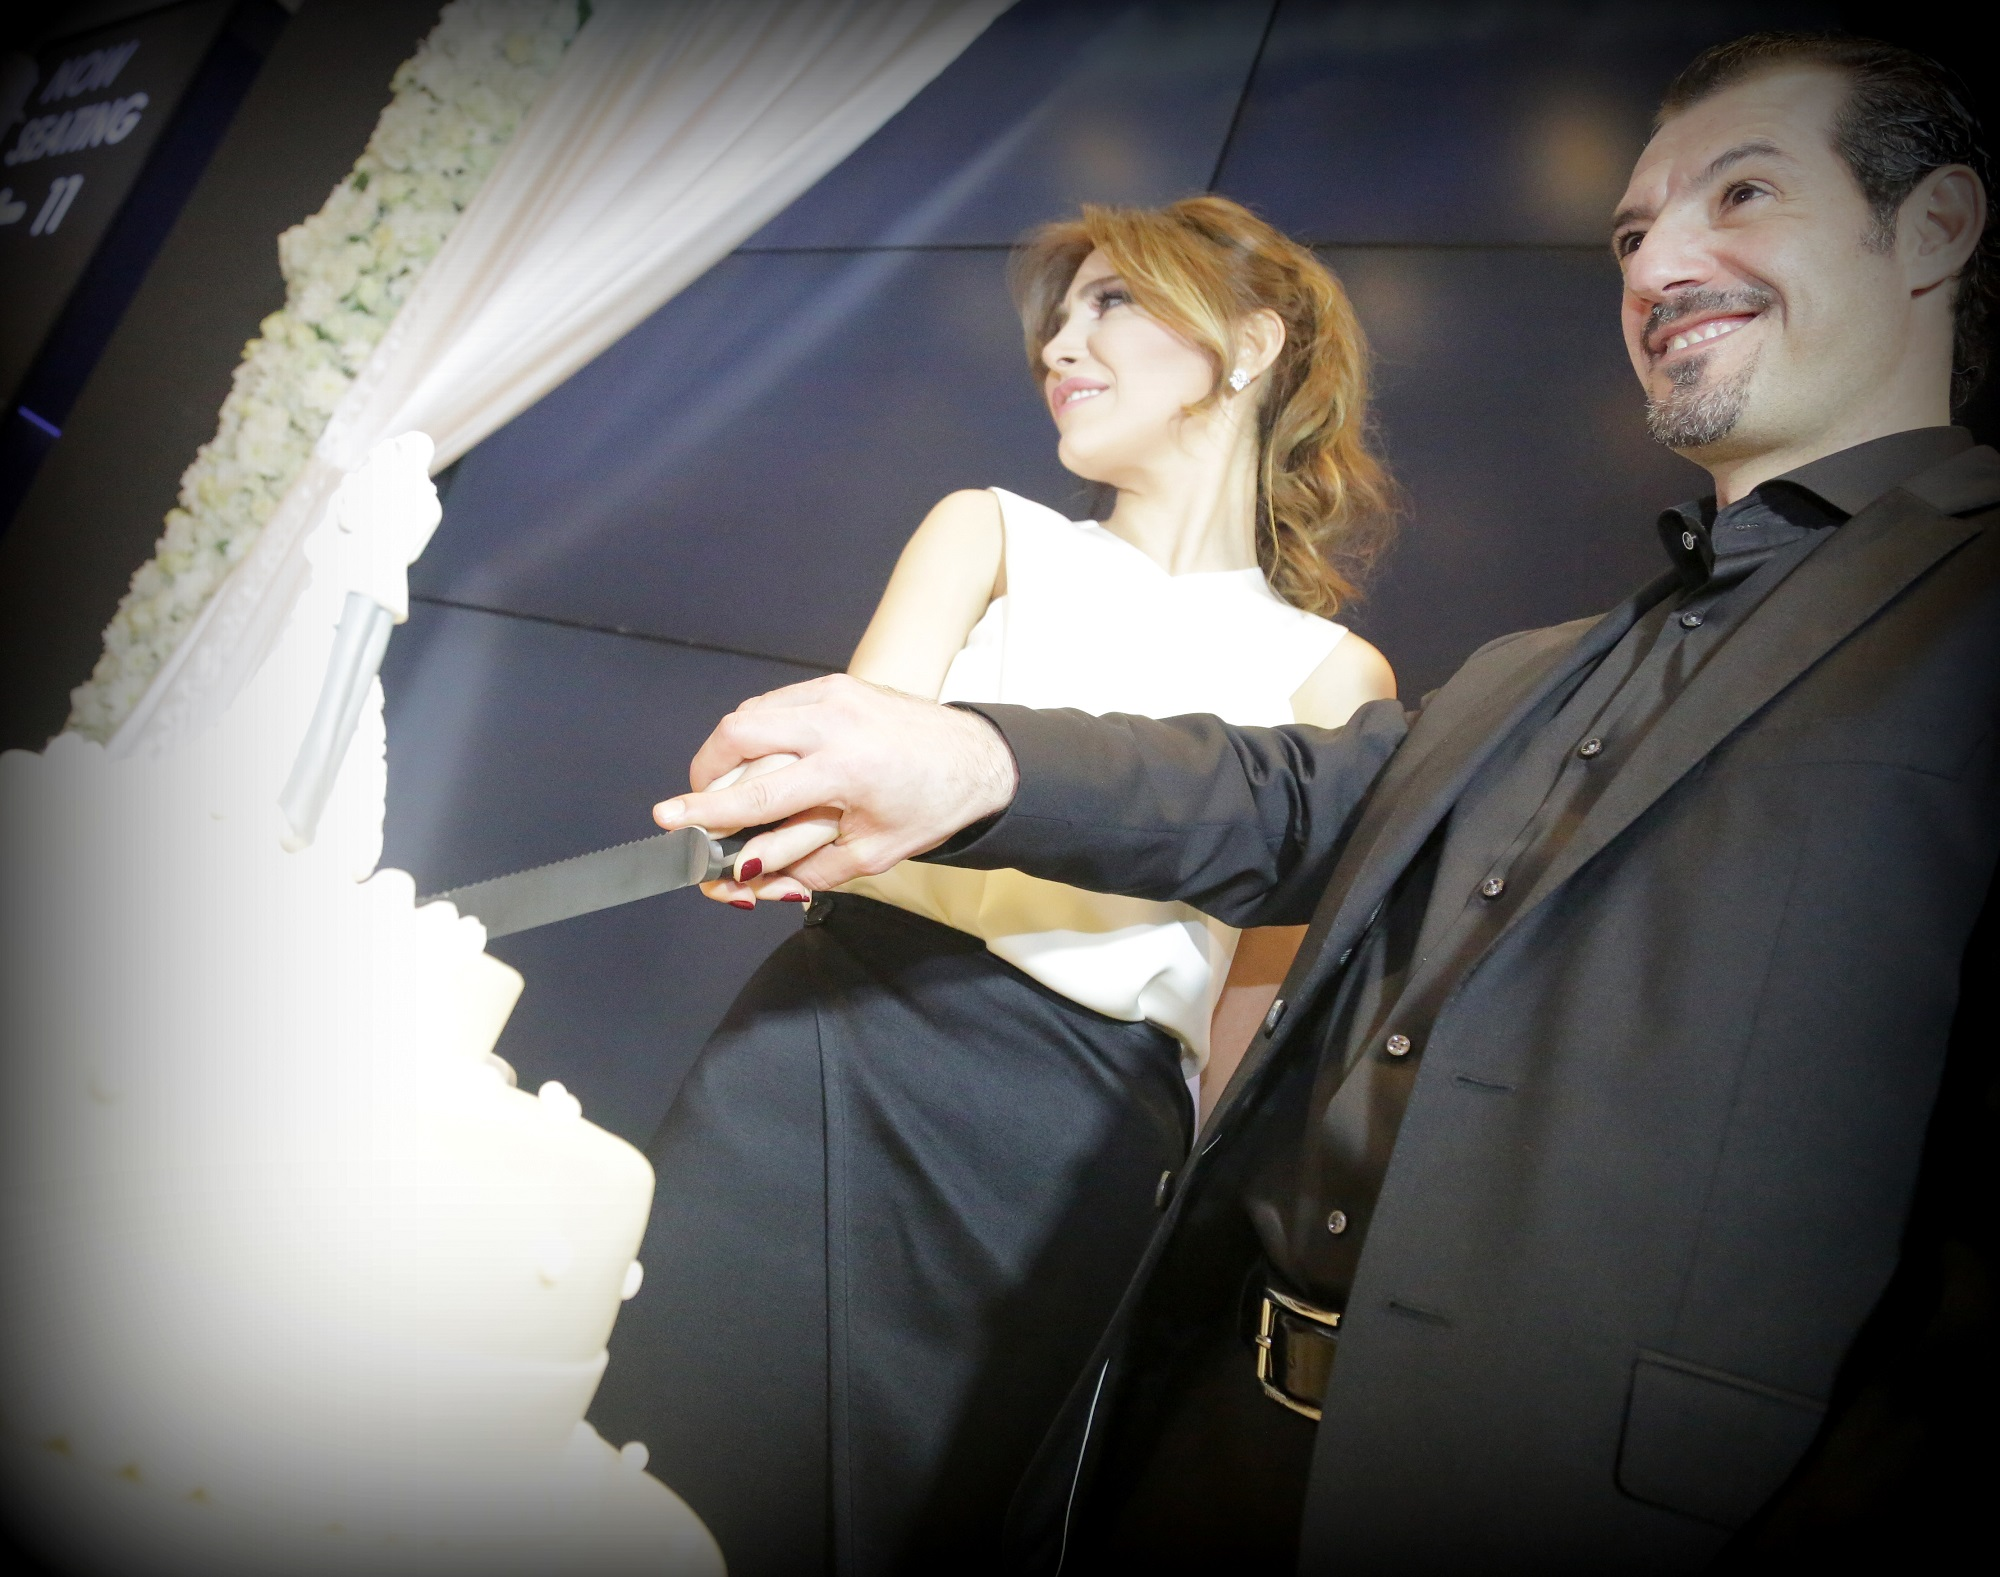 Pictures Yara And Adel Karam Get Married In Her New Music